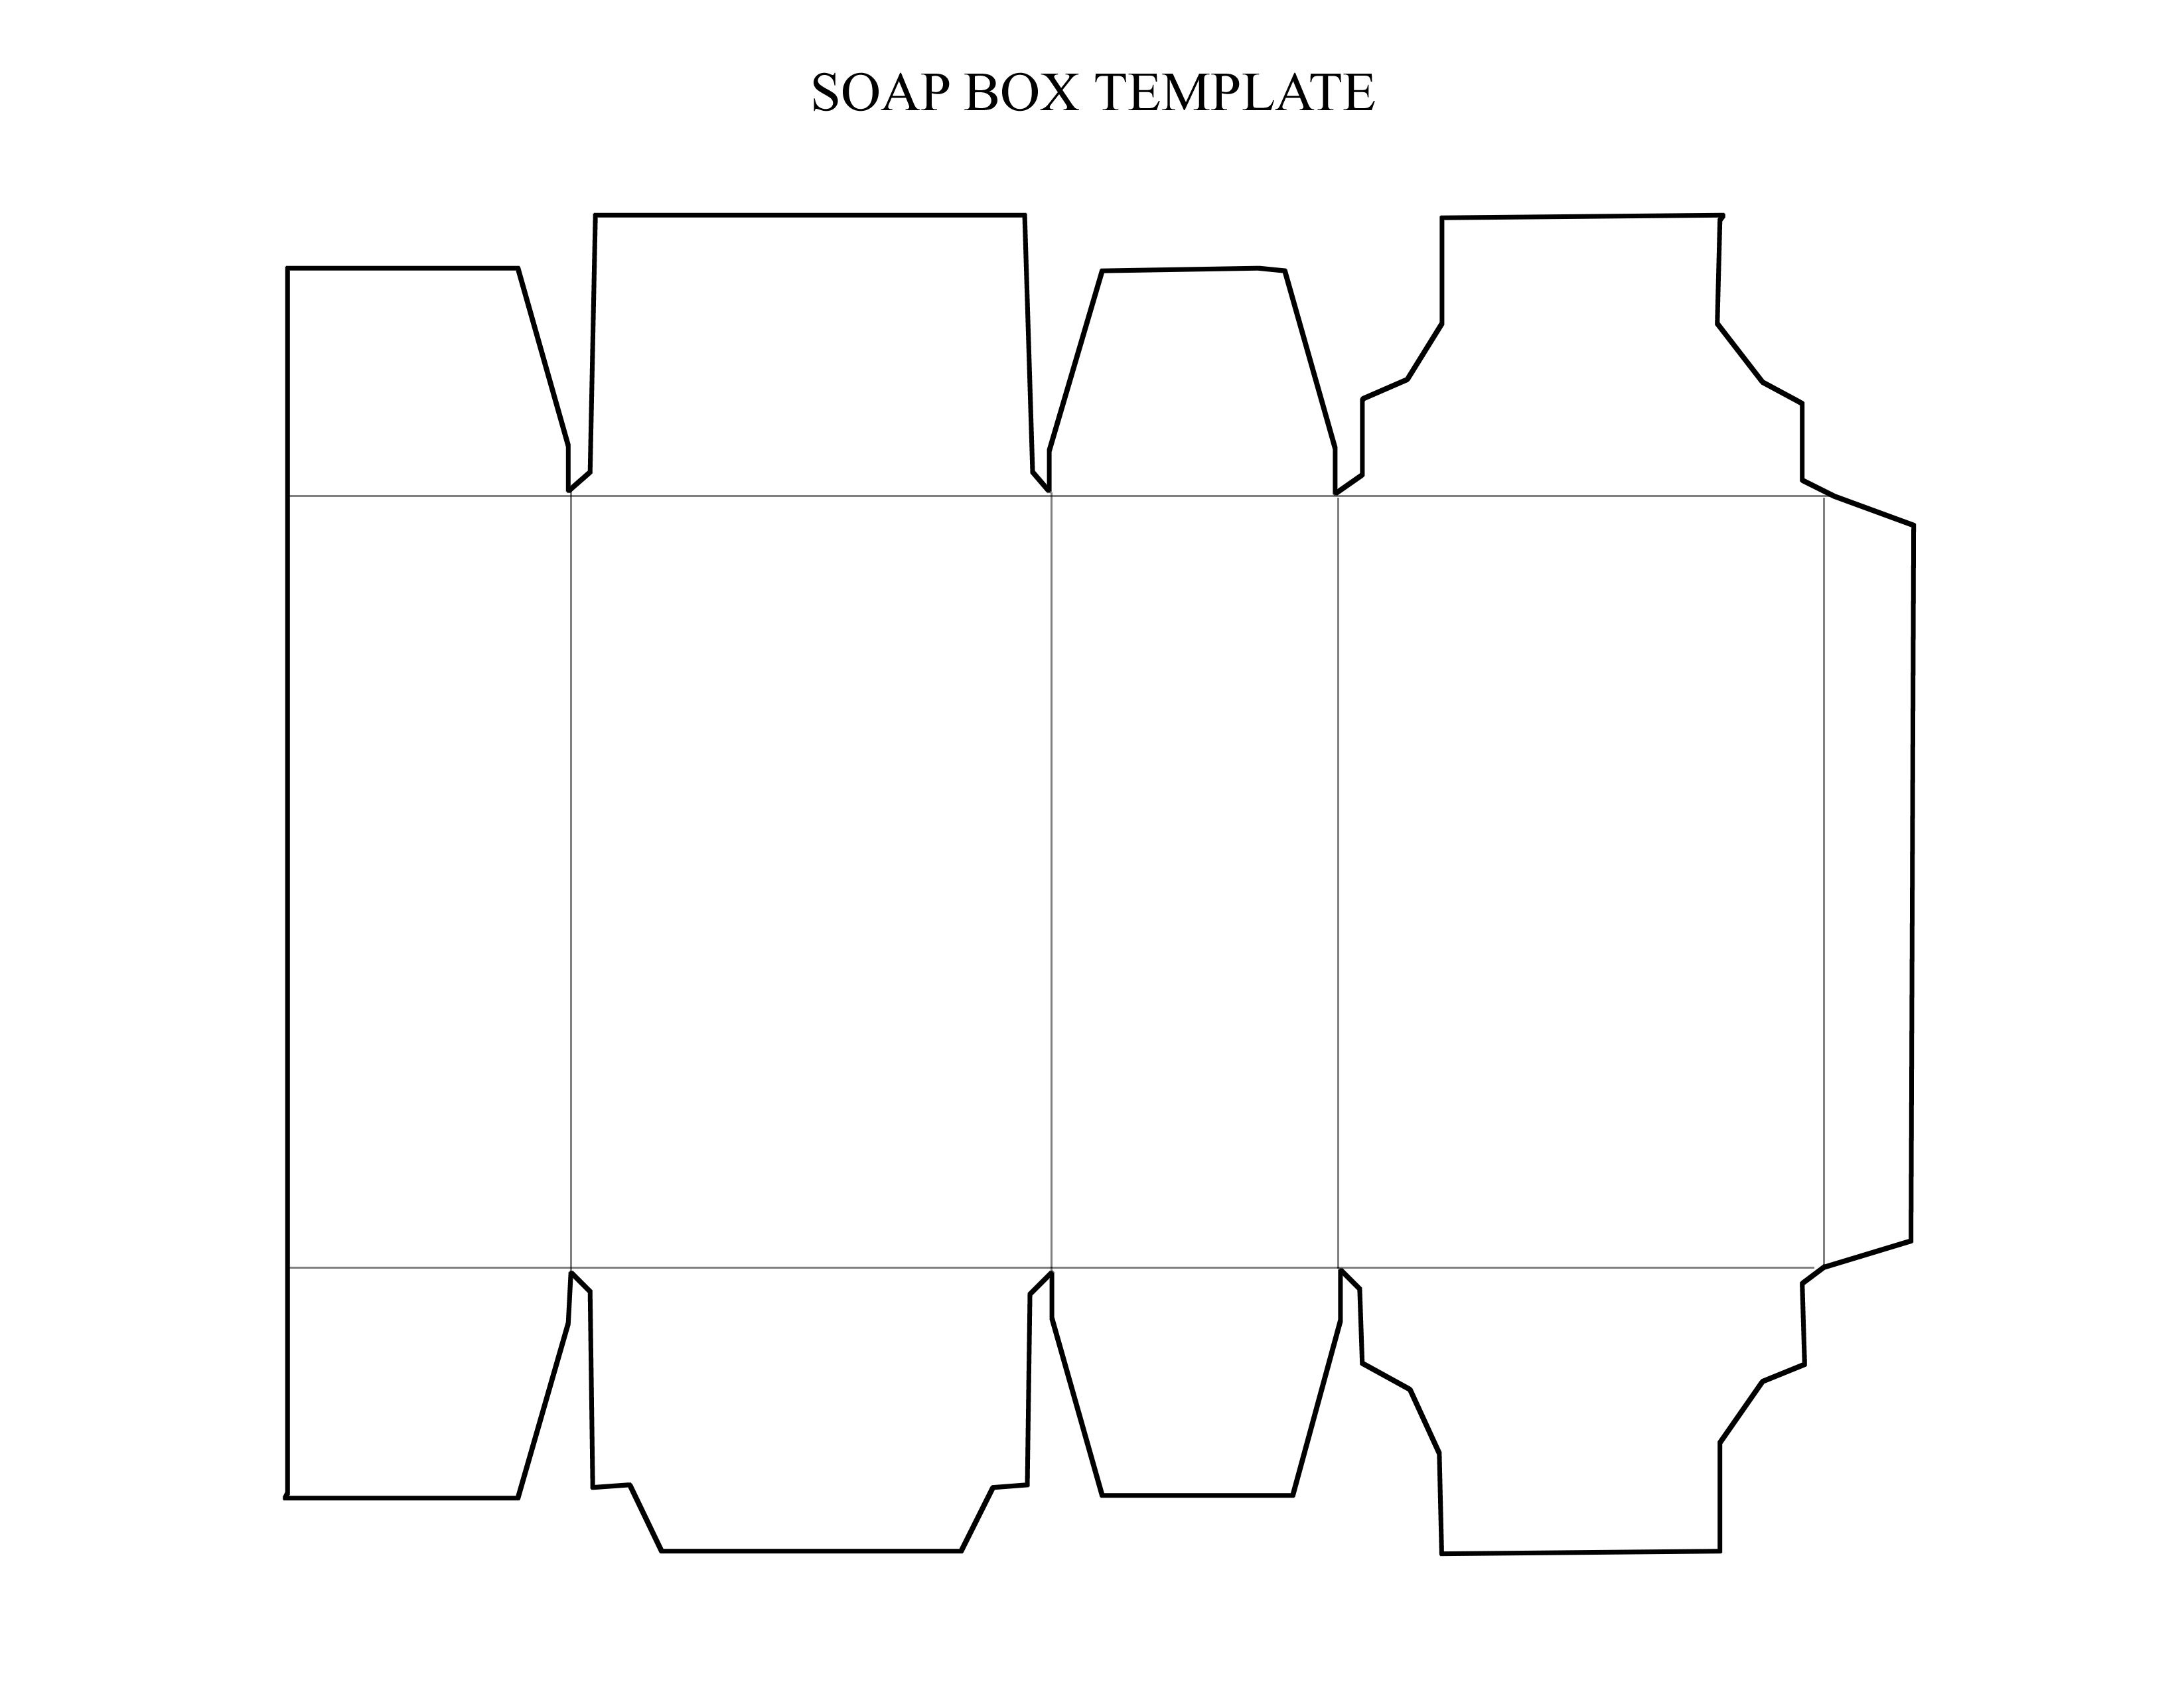 mel stampz box templates tutorials gift card treat boxes mel stampz 100 box templates tutorials gift card treat boxes